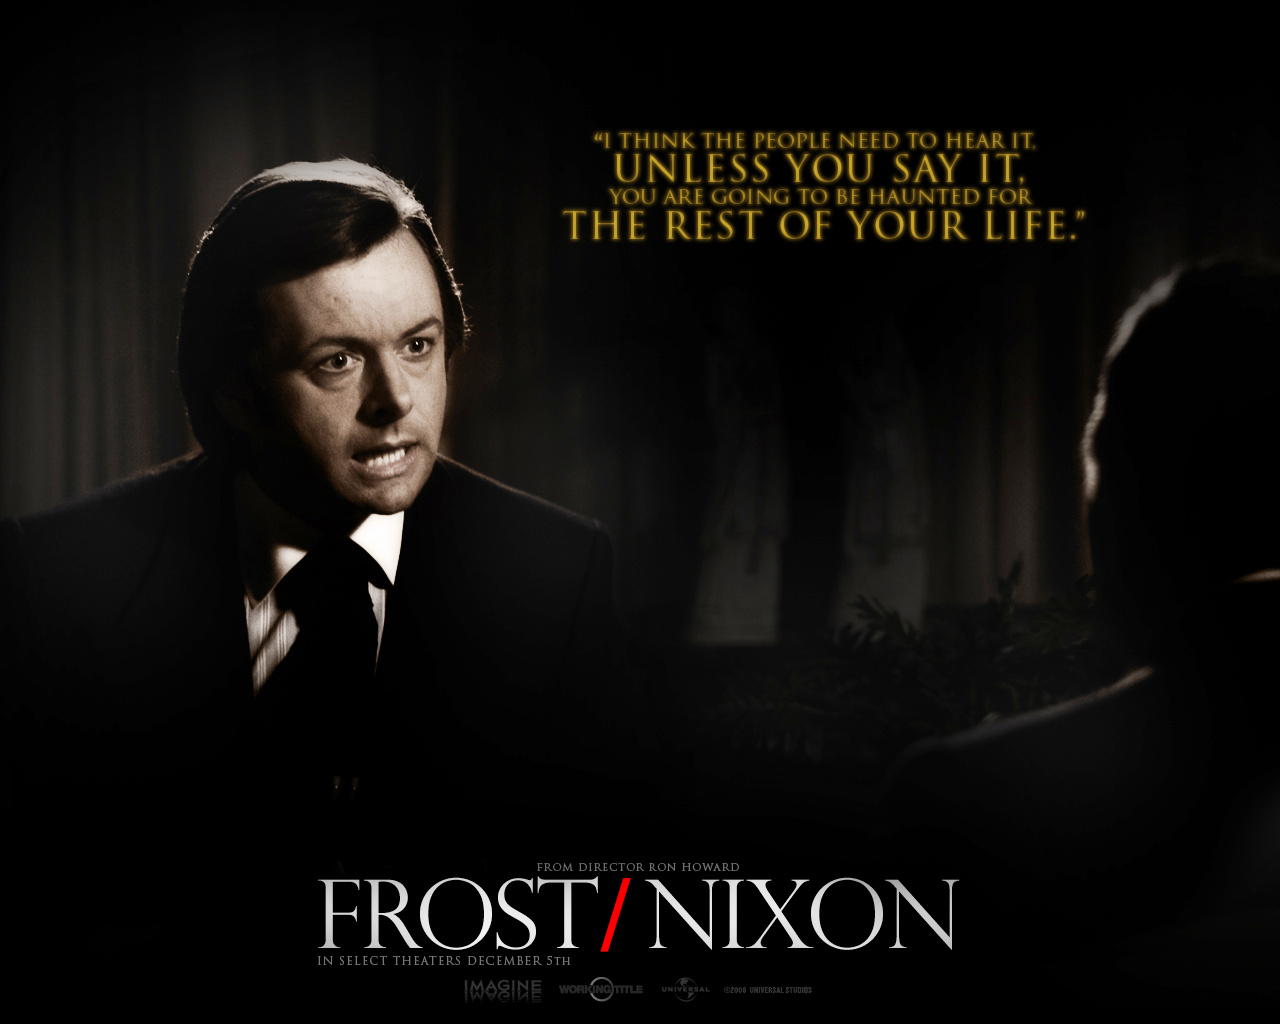 Ron Howard's Frost Nixon is one of the best and most underrated films of Hollywood